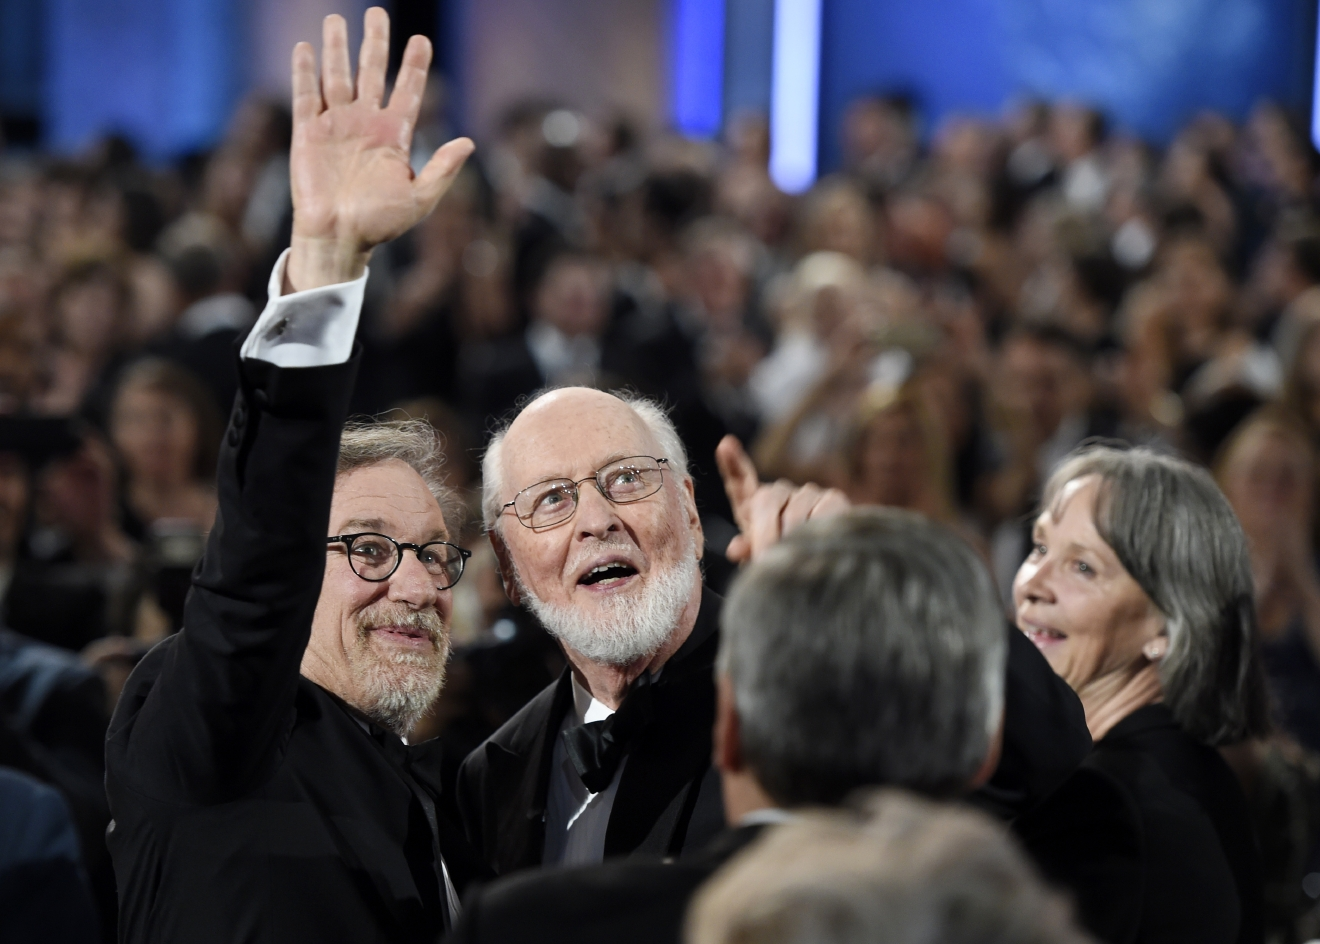 Filmmaker Steven Spielberg, left, and composer John Williams wave to the audience during the 2016 AFI Life Achievement Award Gala Tribute to Williams at the Dolby Theatre on Thursday, June 9, 2016, in Los Angeles. (Photo by Chris Pizzello/Invision/AP)